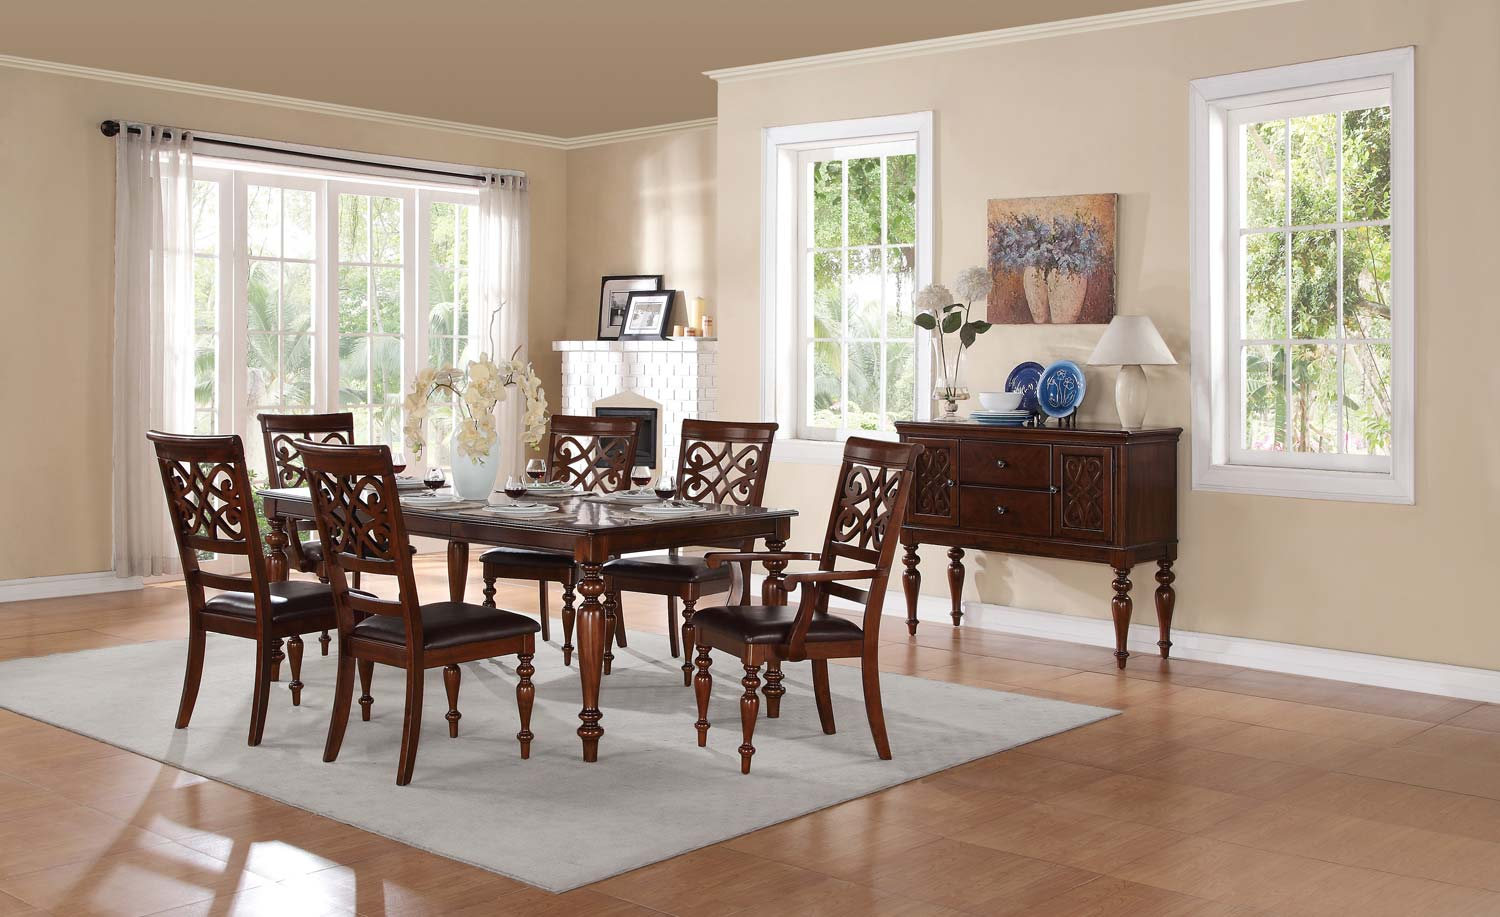 Homelegance Creswell Leg Table Dining Set - Rich Cherry